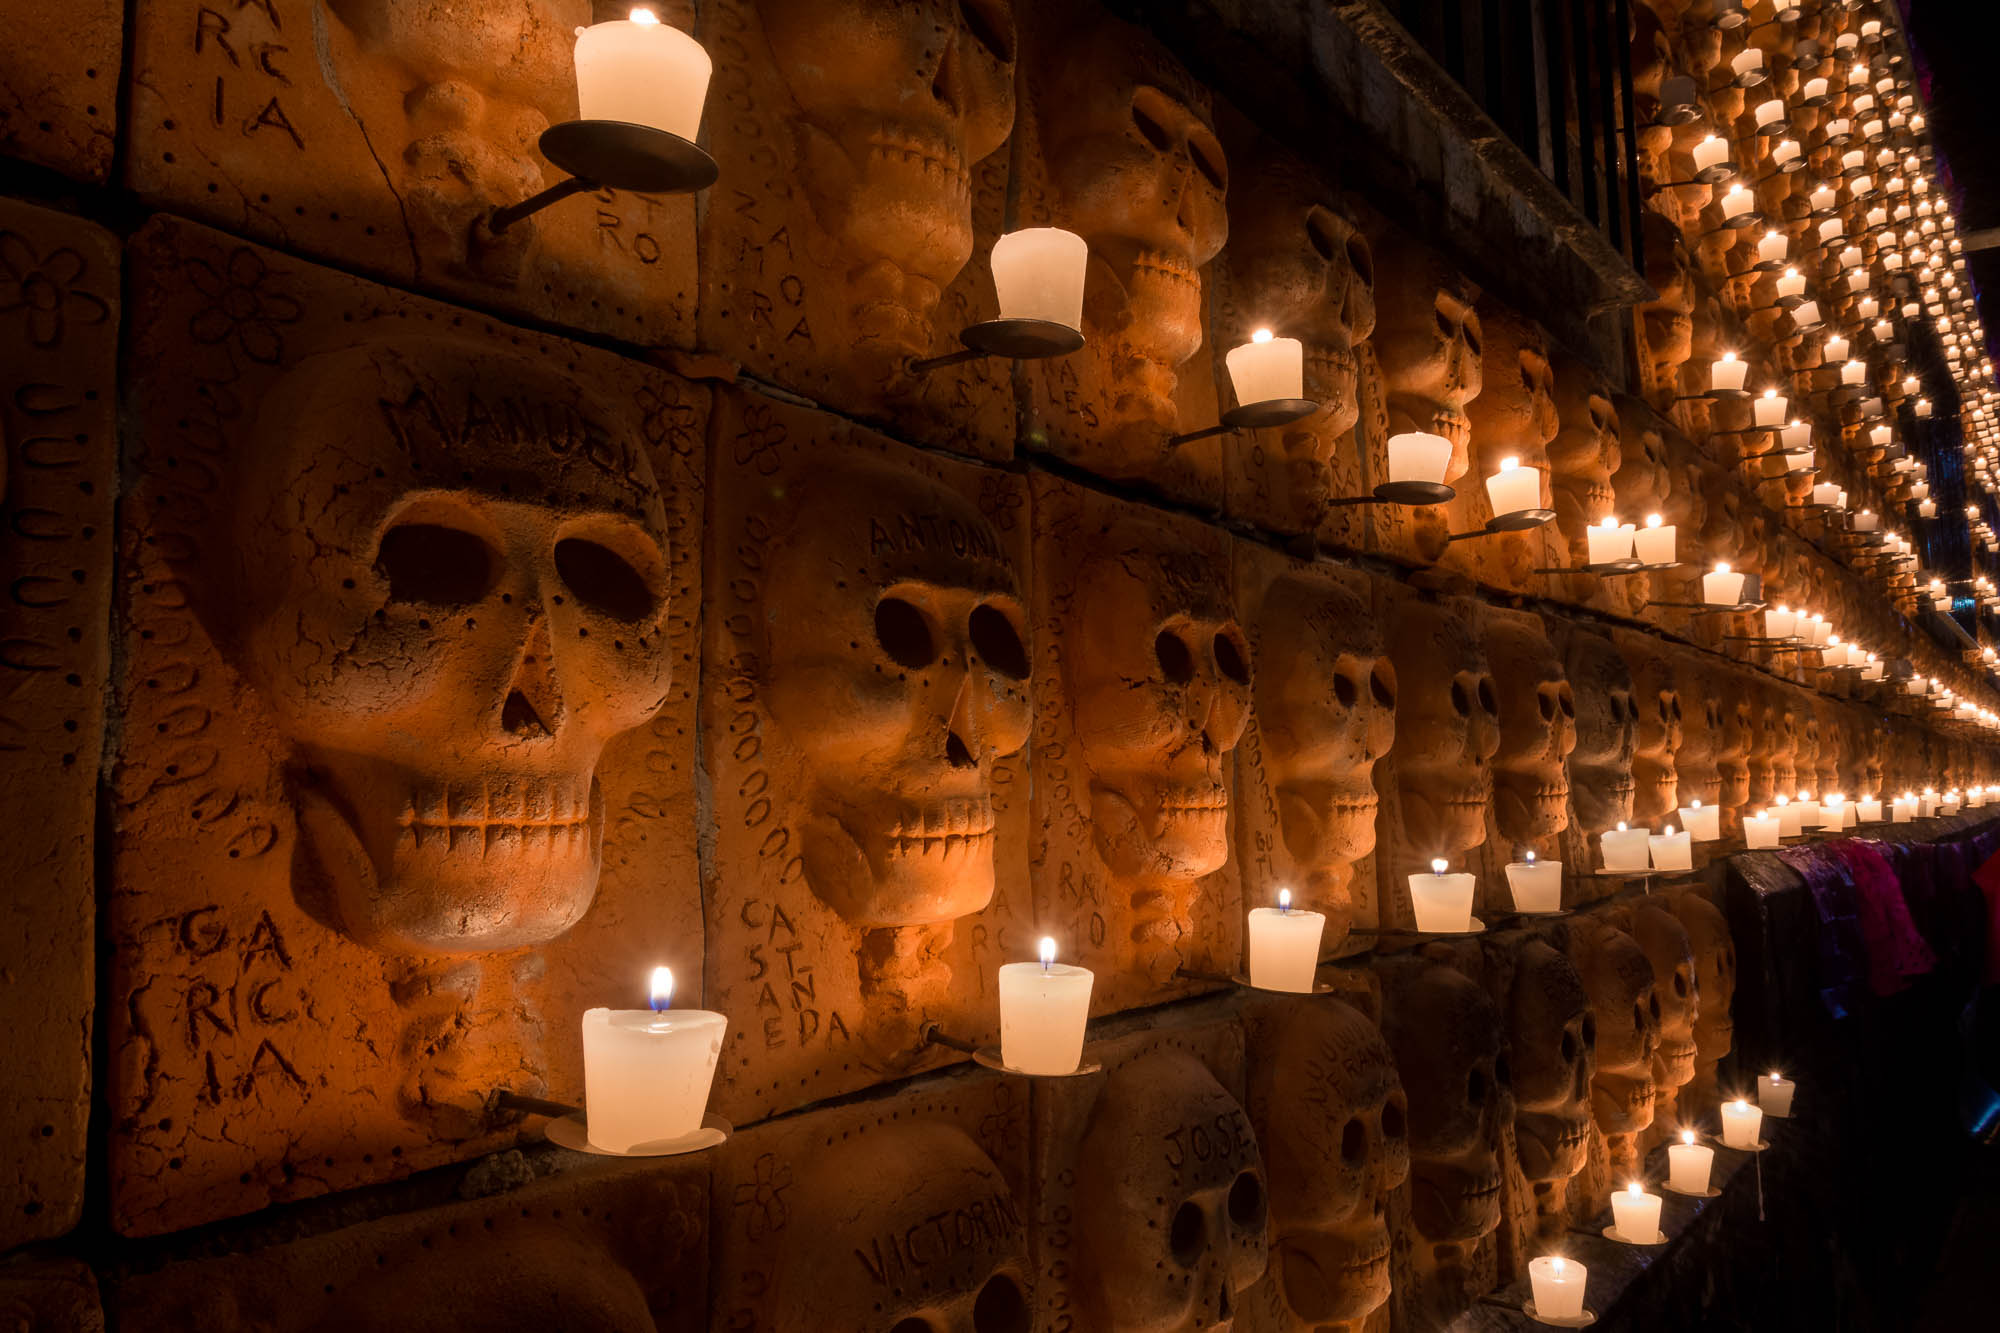 Day of the Dead in Jalisco, Mexico